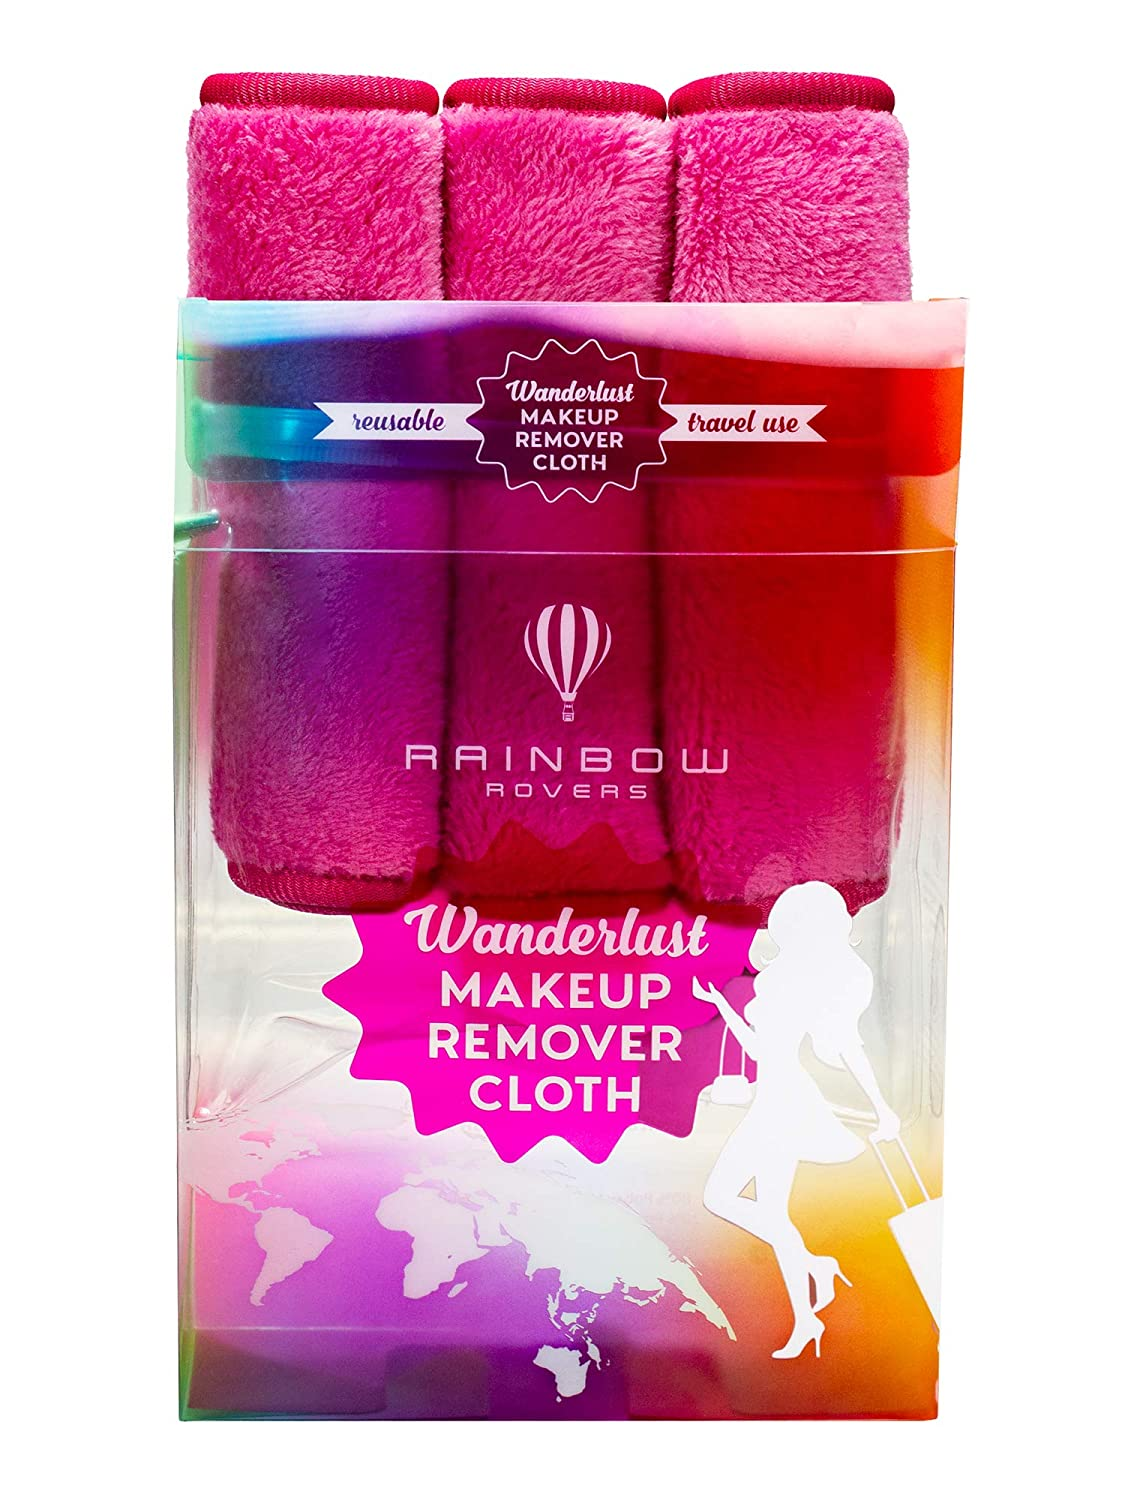 RAINBOW ROVERS Set of 3 Makeup Remover Wipes | Reusable & Ultra-fine Makeup Towels | Suitable for All Skin Types | Removes Makeup with Water | Free Bonus Waterproof Travel Bag | Hot Pink